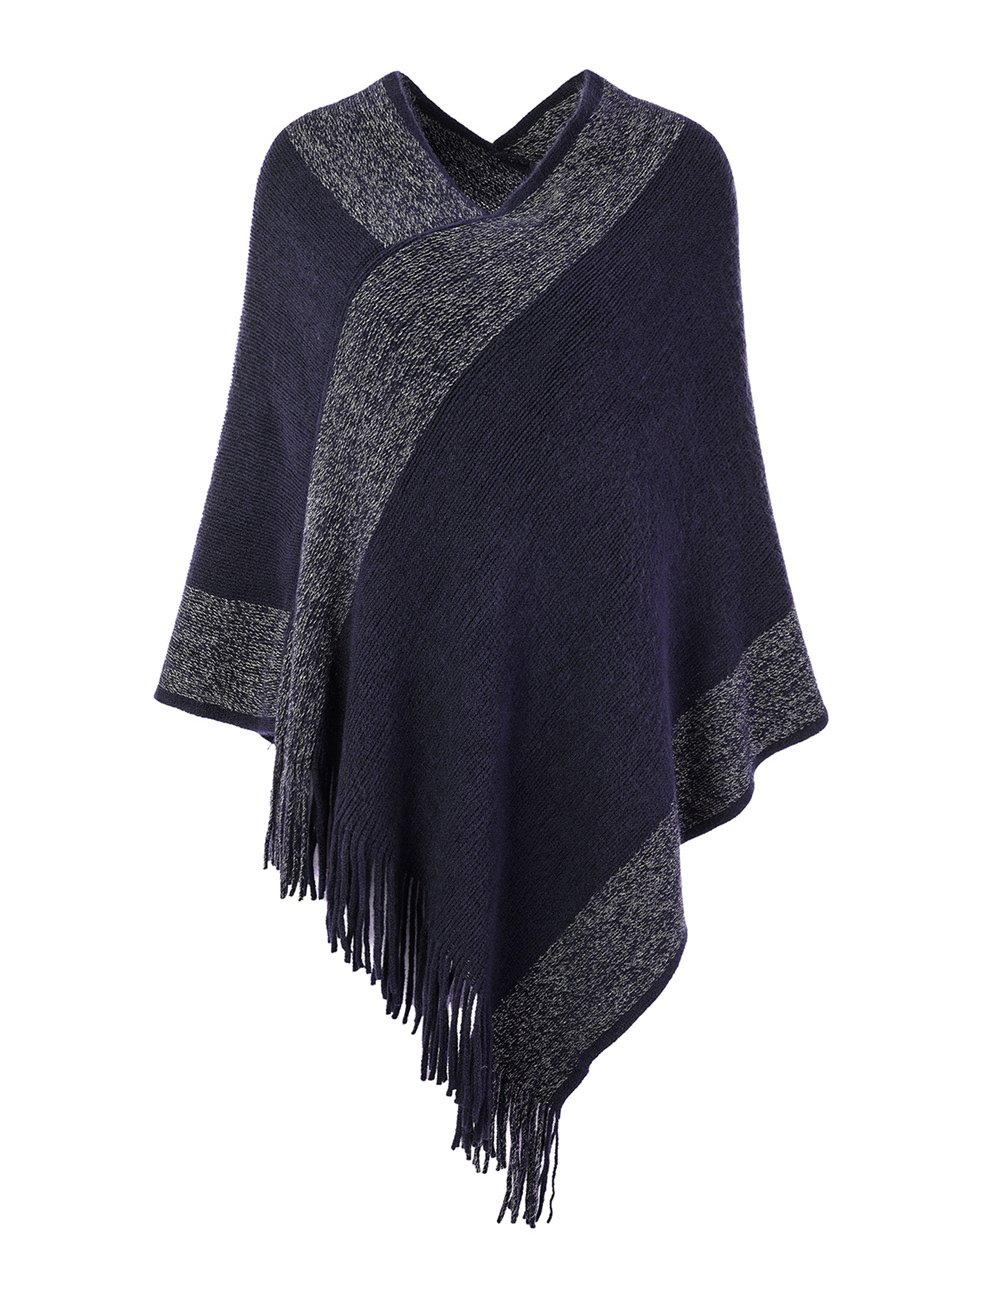 Ferand Stylish Knit Striped V Neck Pullover Poncho with Tassels for Women, One Size, Navy Blue